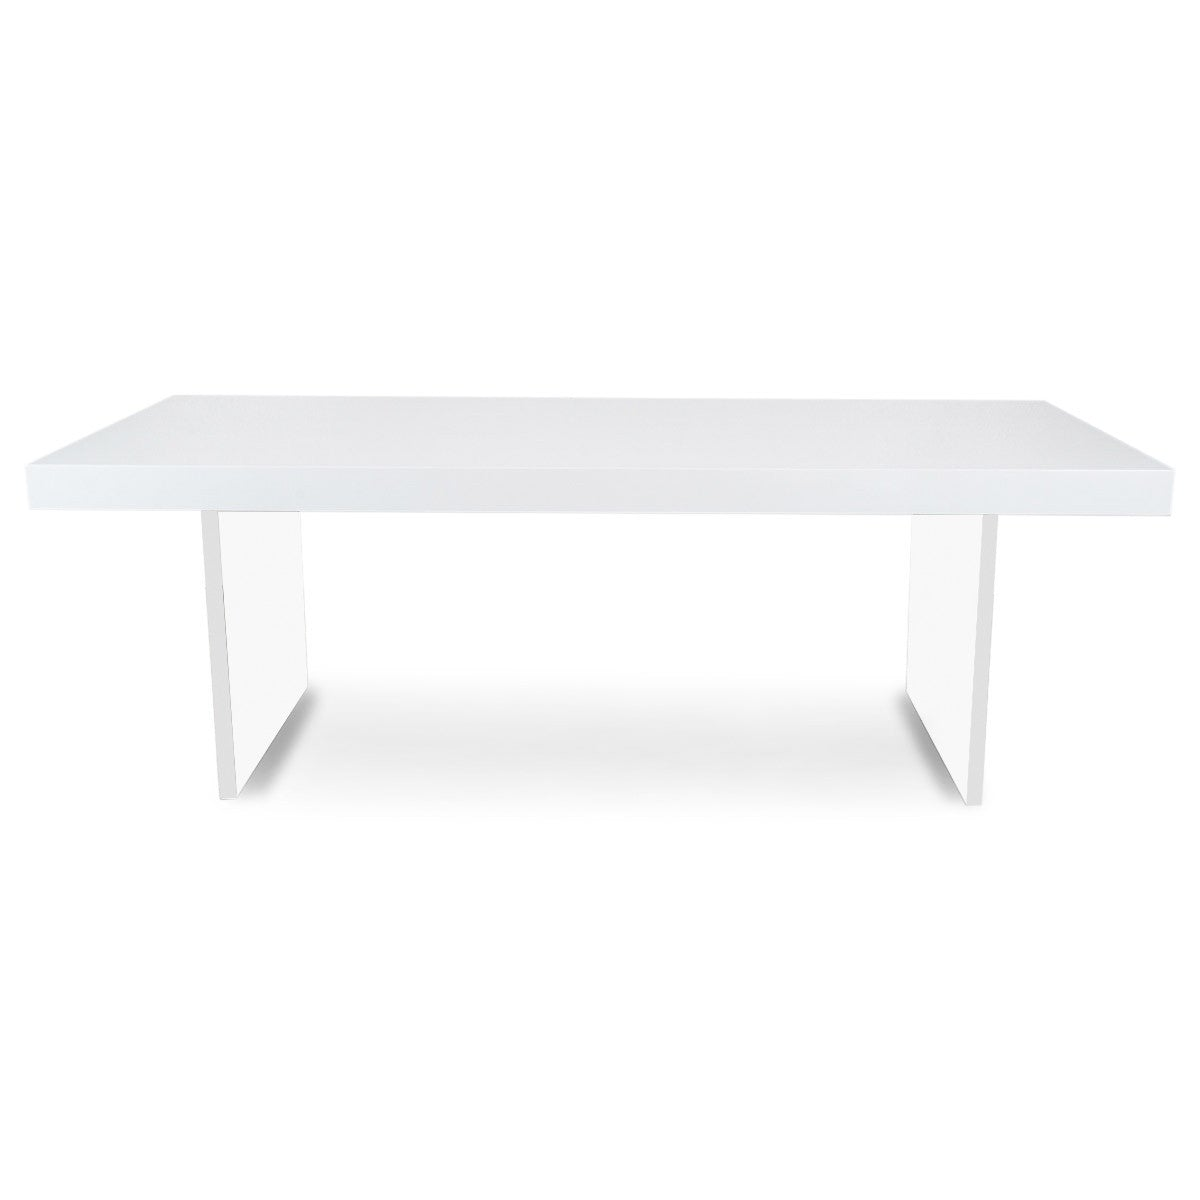 Lucite Plinth Leg Dining Table in White ModShop : plinth lucite leg dining table 4 from modshop1.com size 1200 x 1200 jpeg 19kB